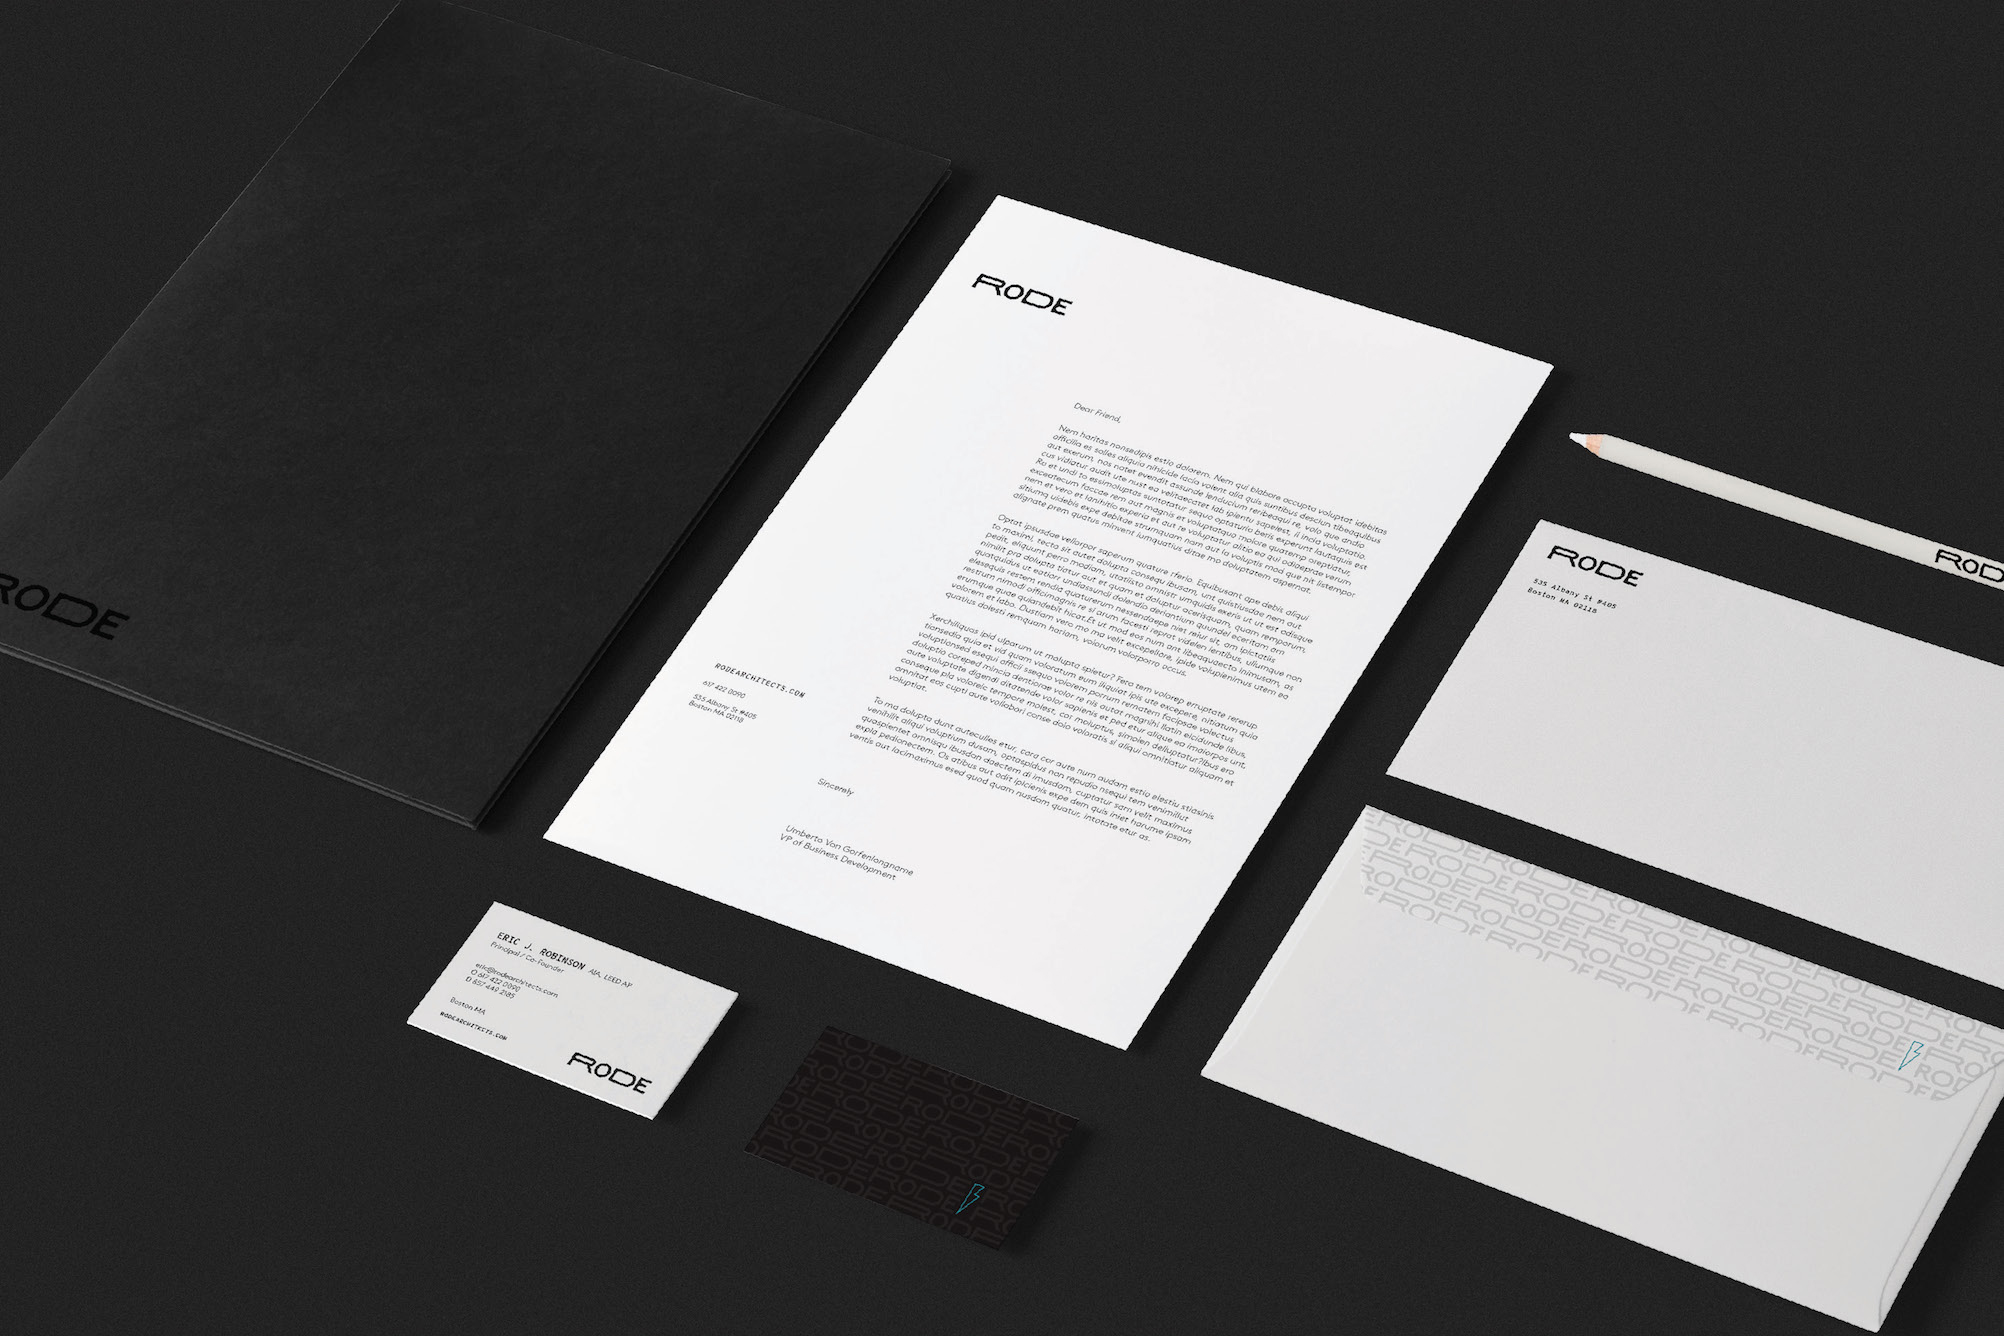 RODE Architects Branding